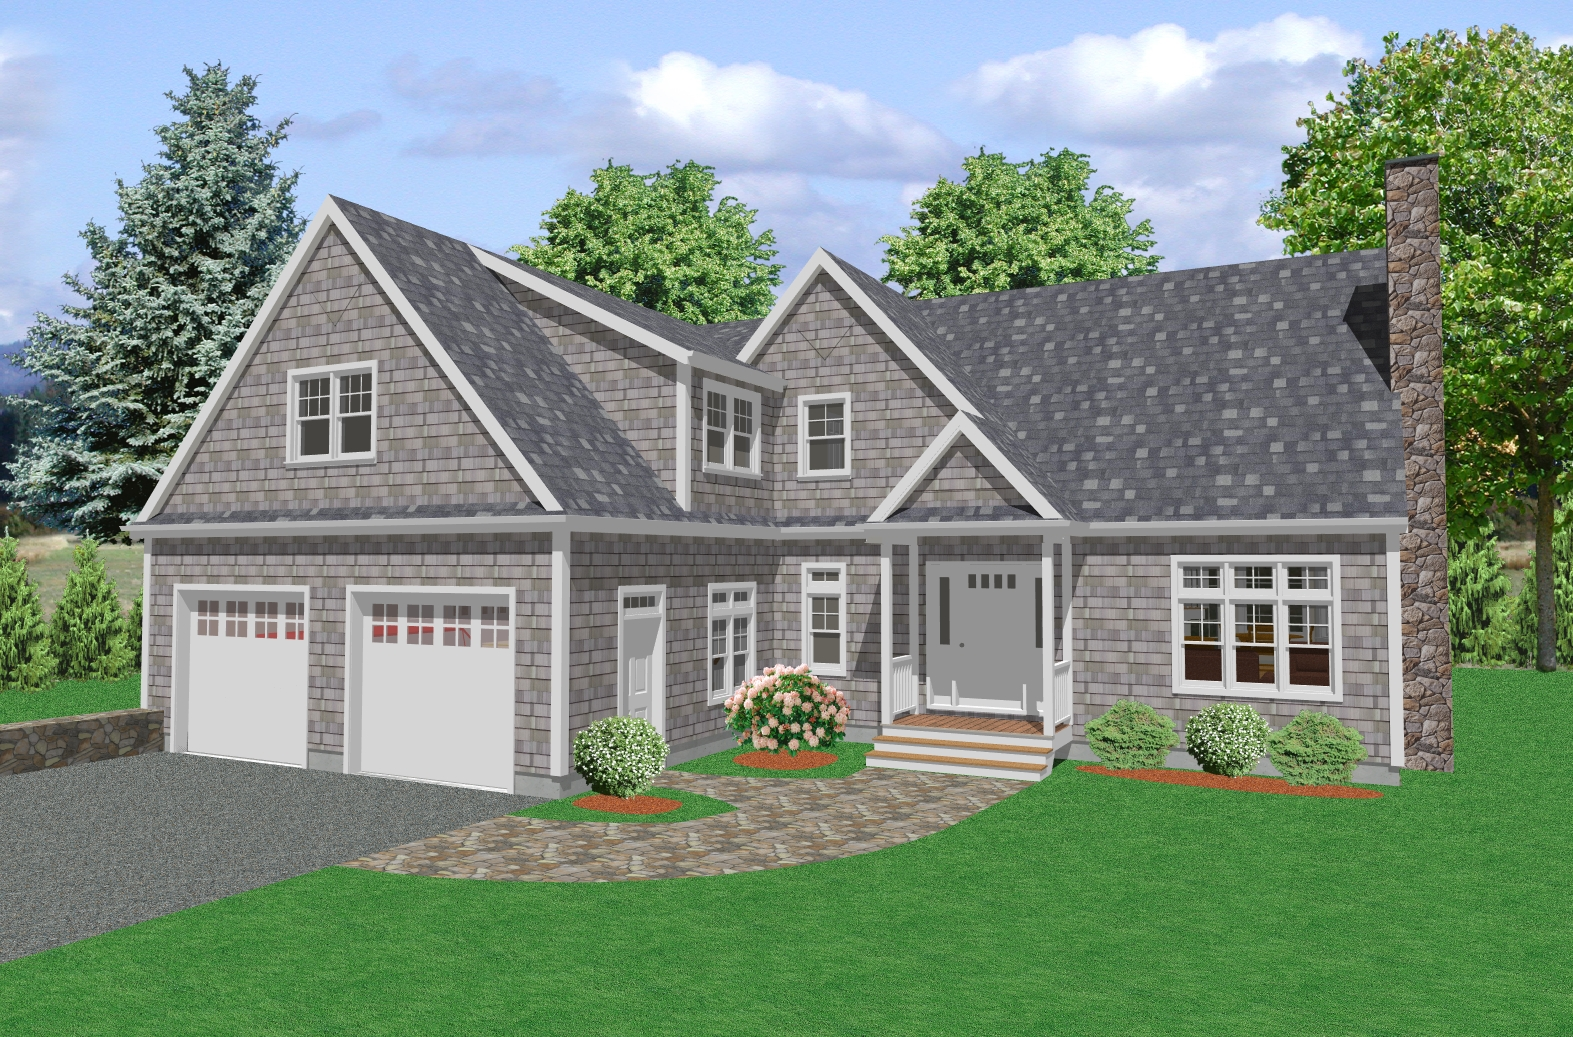 Country house plan two story traditional country house plan cape cod house plans the house Cape cod design house design